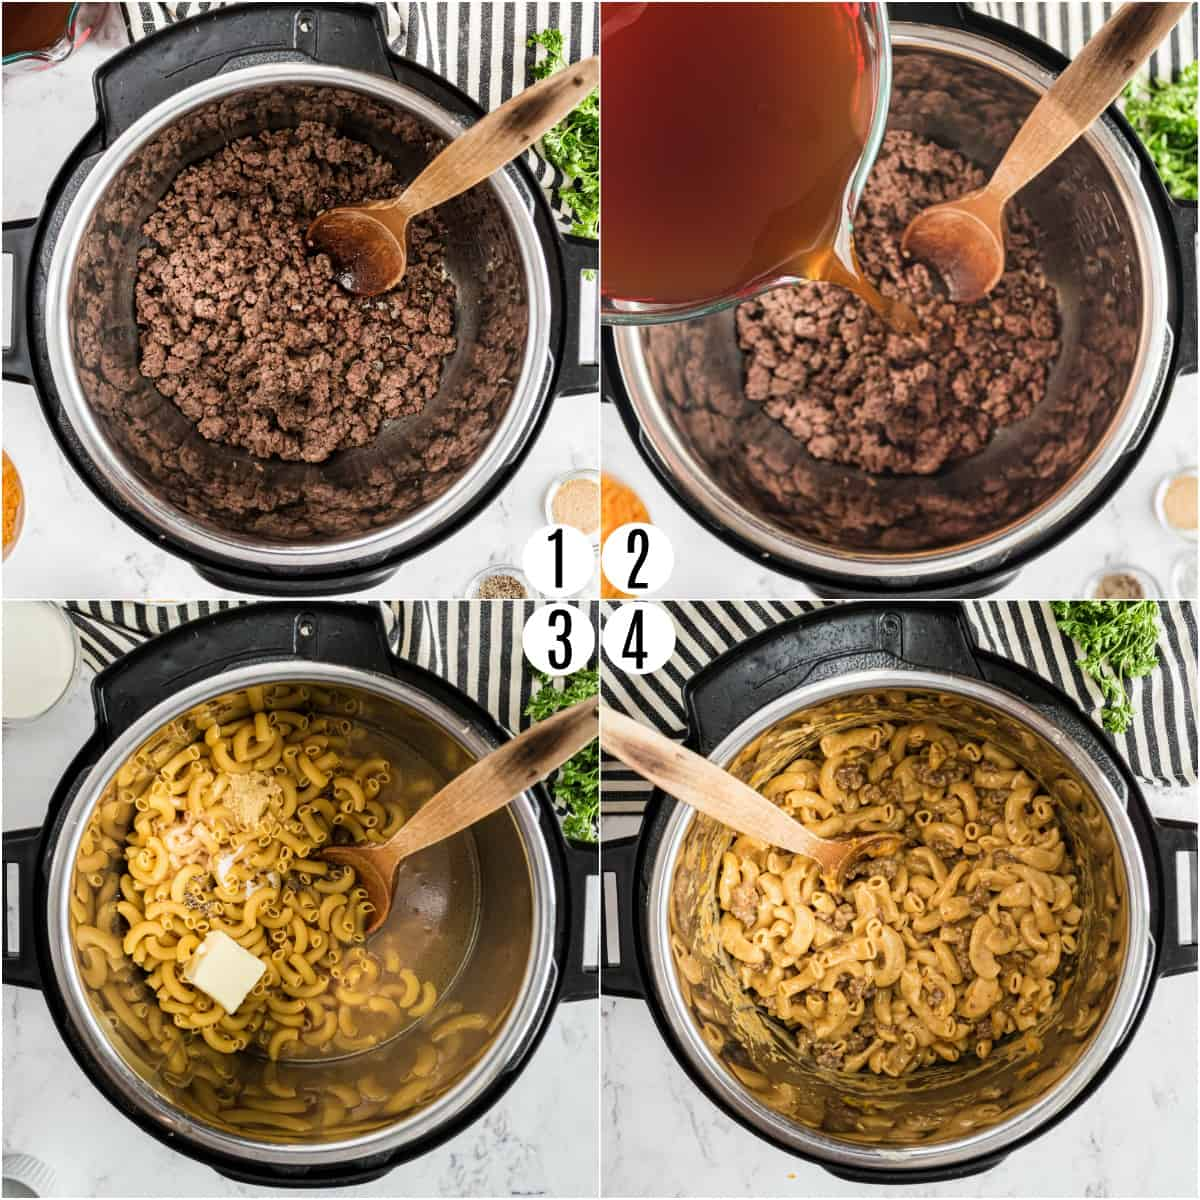 Step by step photos showing how to make hamburger helper in the Instant Pot.